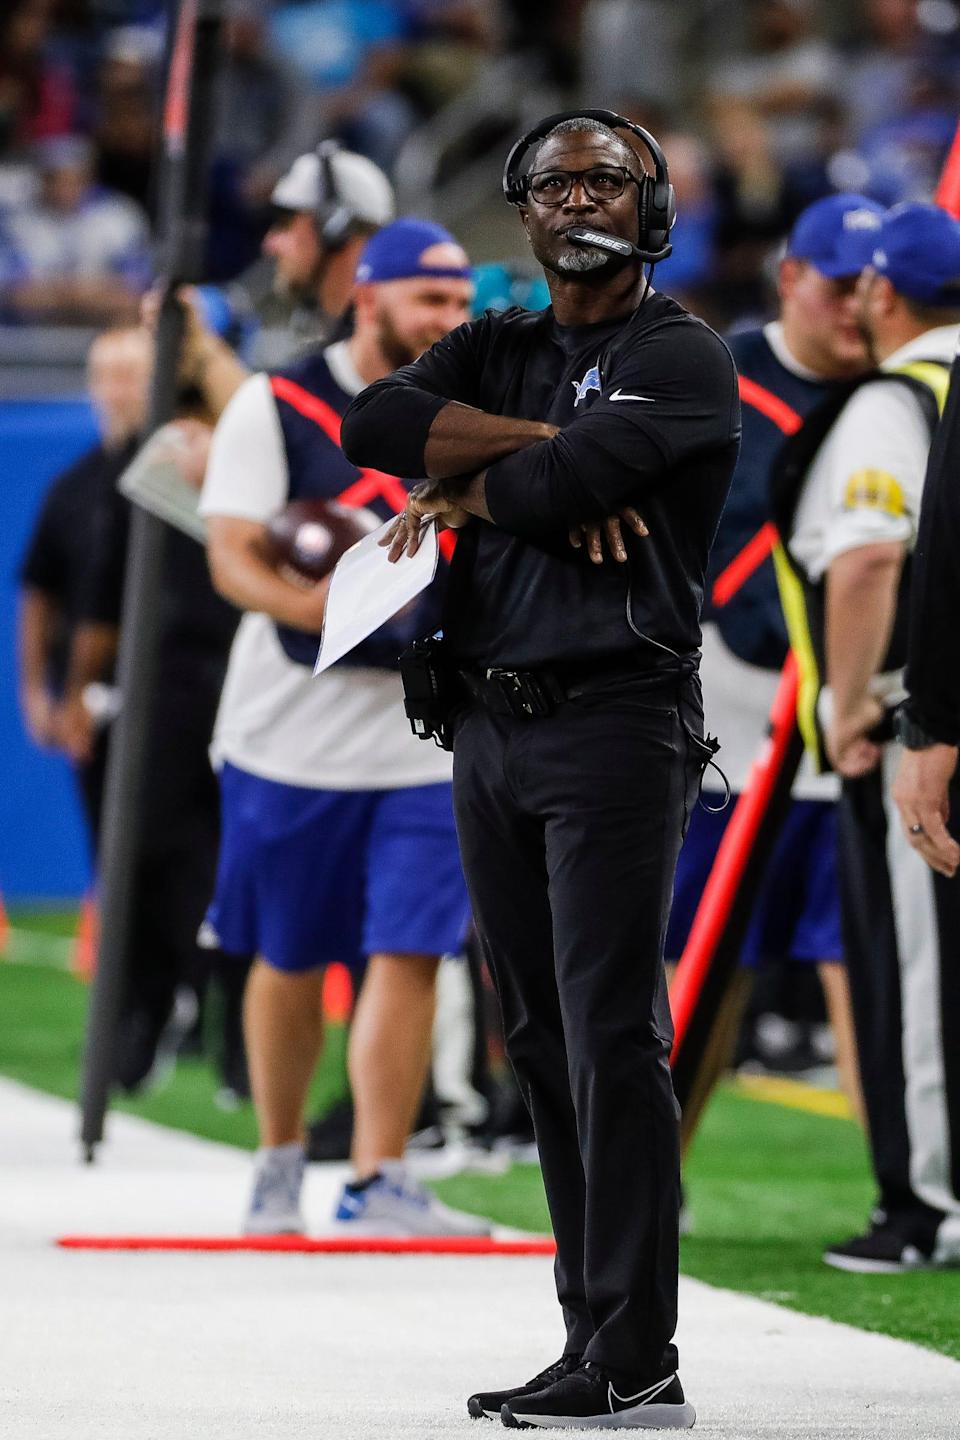 Lions defensive coordinator Aaron Glenn watches a play against the Ravens during the first half of the Lions' 19-17 loss at Ford Field on Sunday, Sept. 26, 2021.